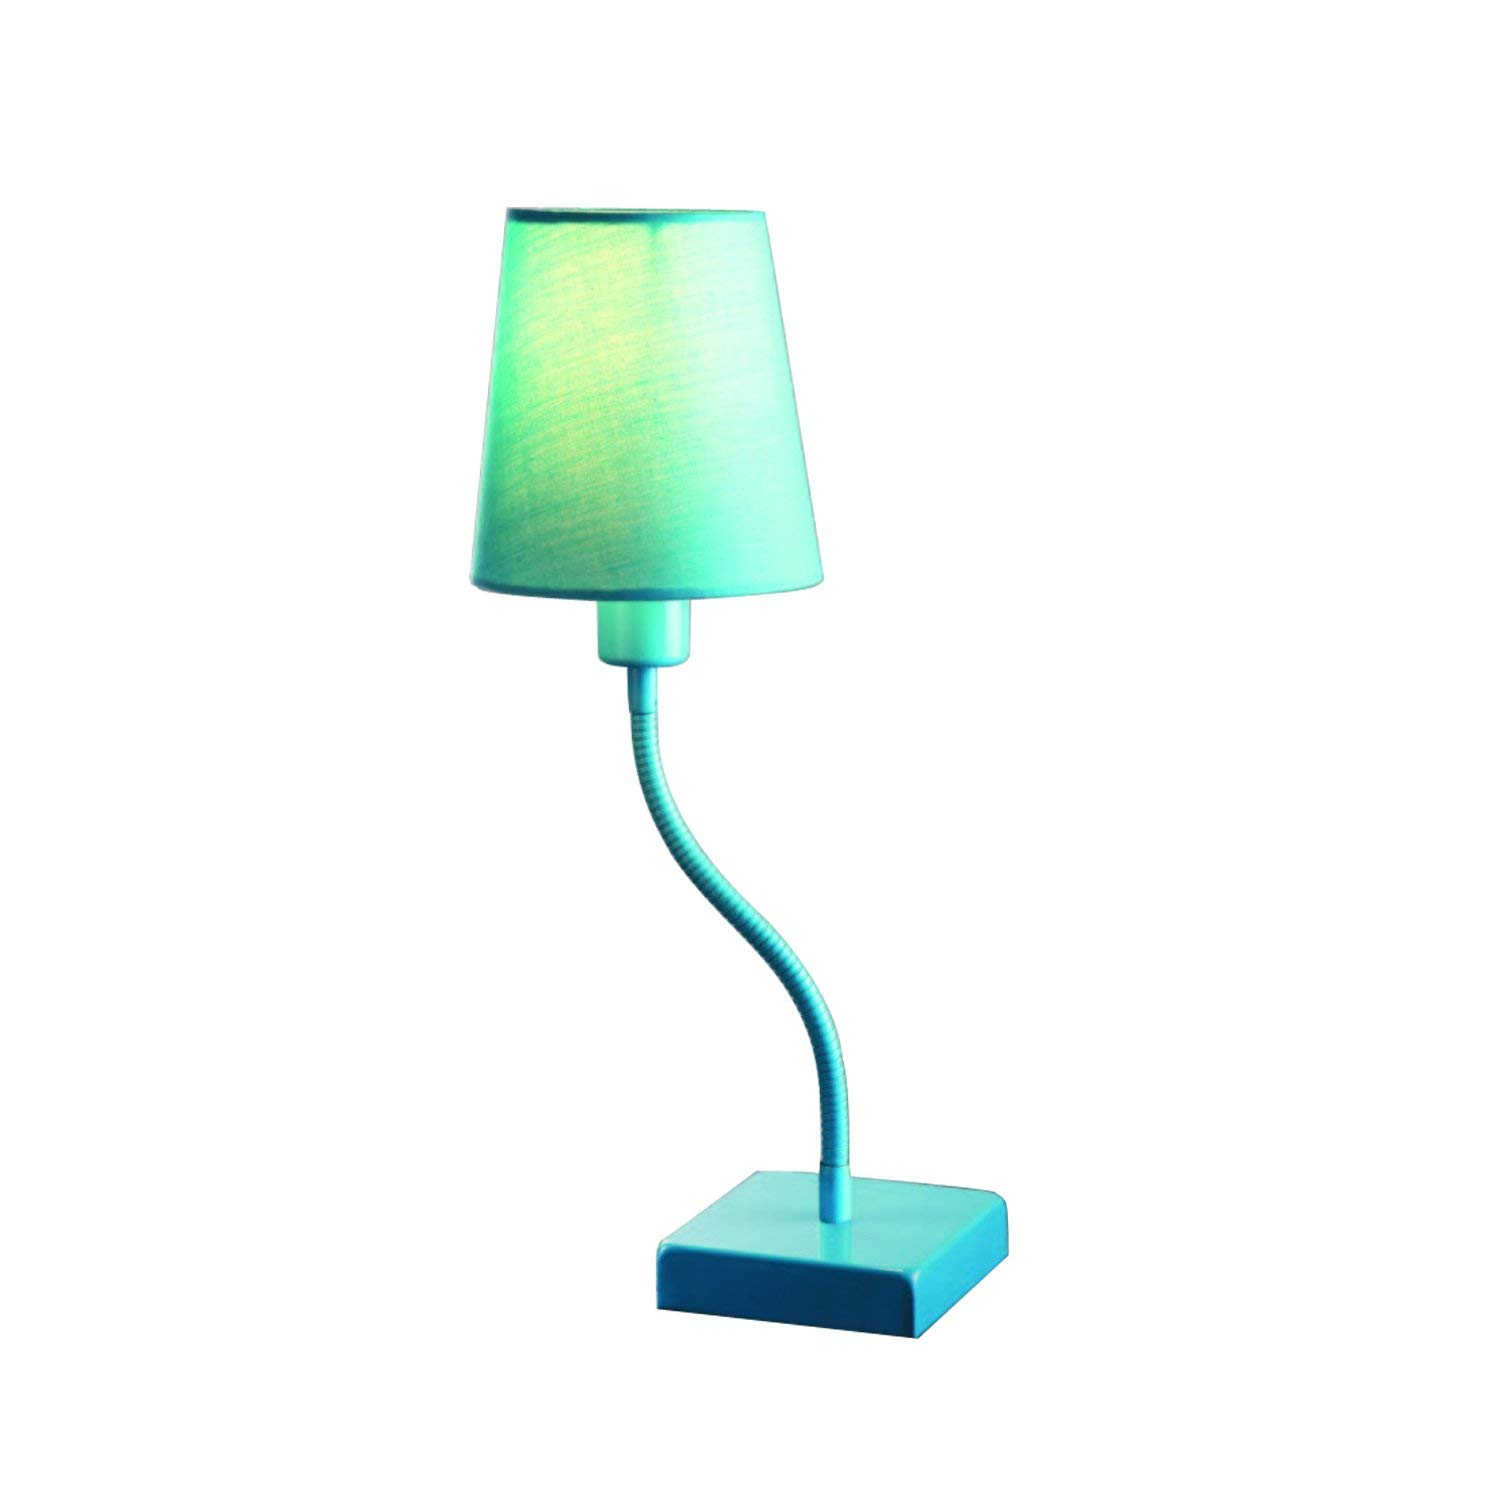 Normande Lighting FS3-863 13W Daylight Spectrum Table Lamp with Flexible Gooseneck, Blue with Blue Fabric Shade